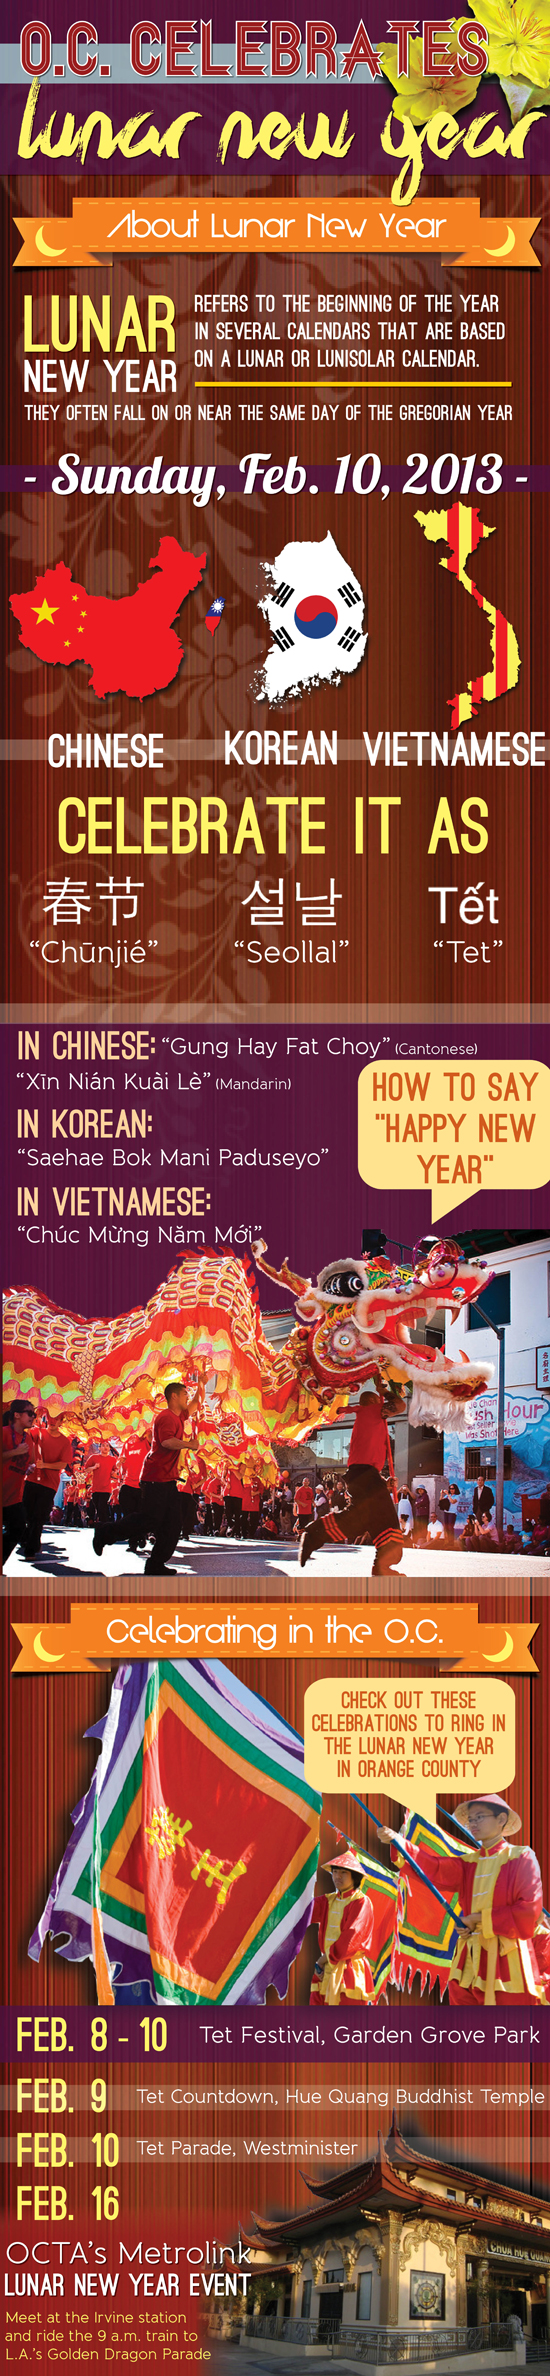 OC Celebrates Lunar New Year 2013  infographic   Asian Americans     OC Celebrates Lunar New Year 2013  infographic